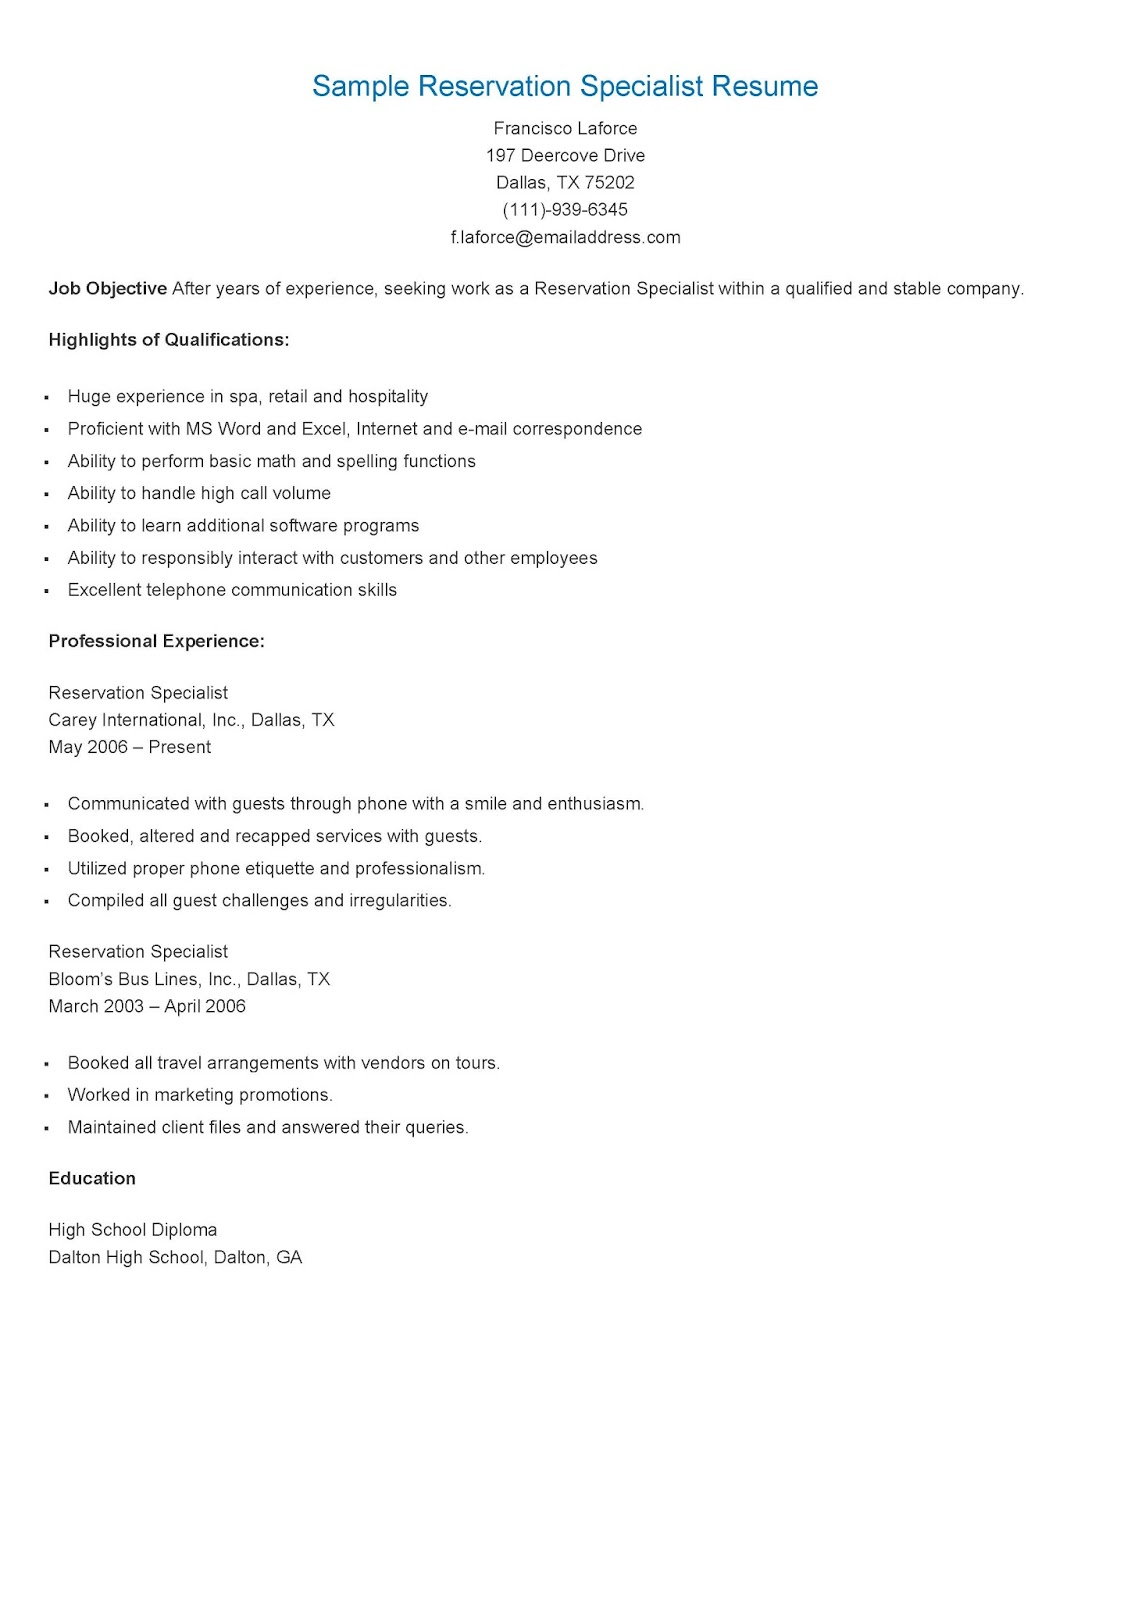 Resume Samples Sample Reservation Specialist Resume